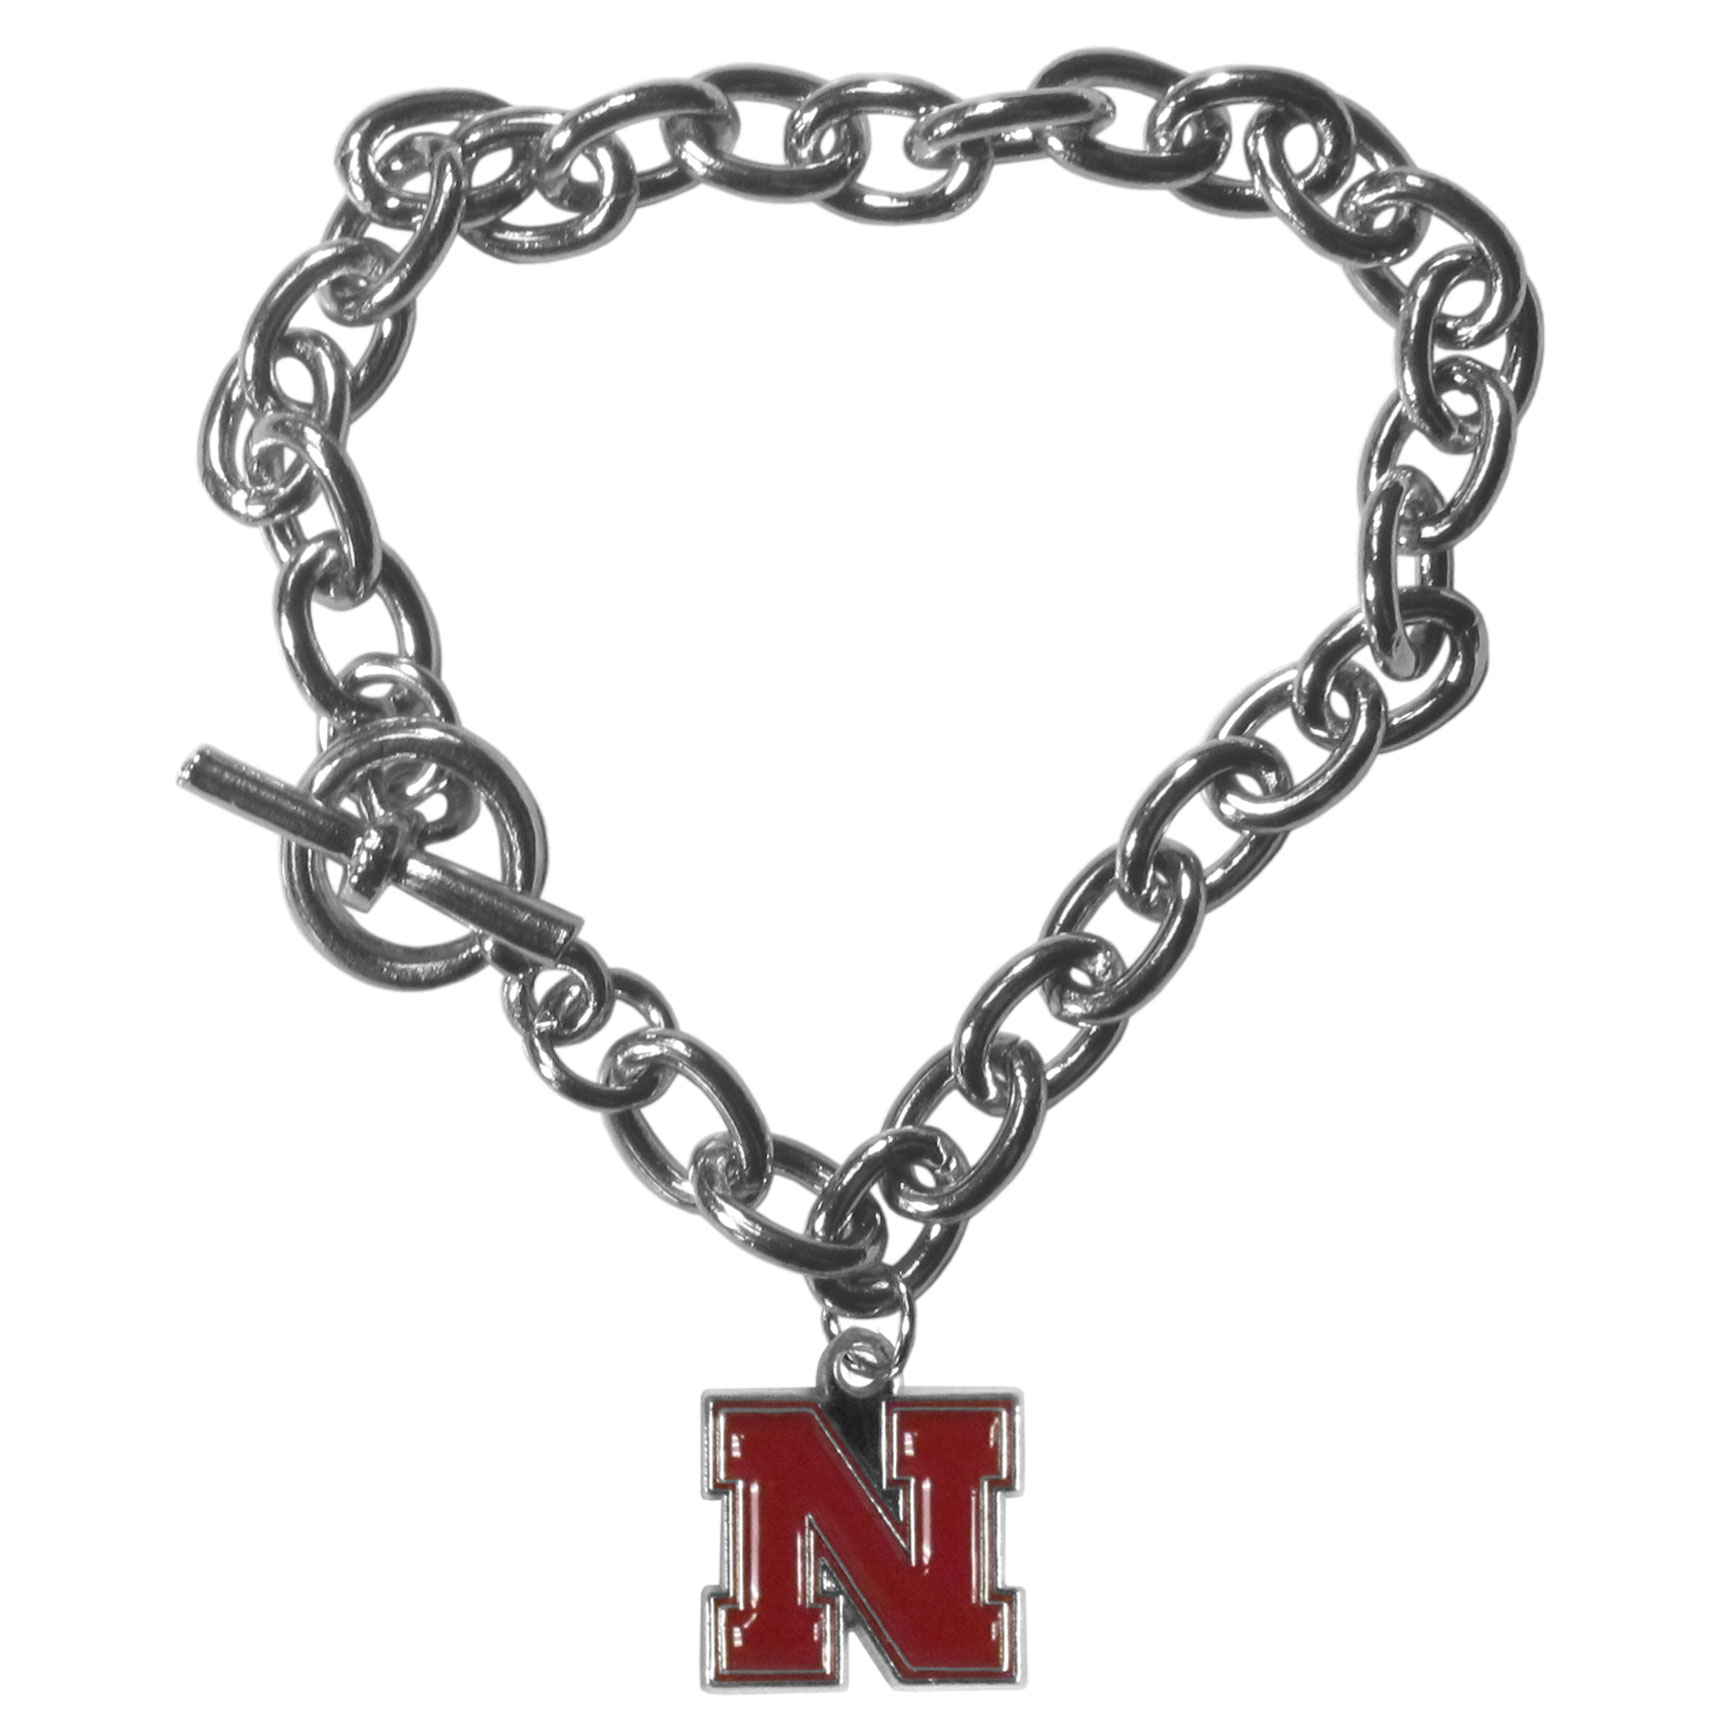 Nebraska Cornhuskers Charm Chain Bracelet - Our classic single charm bracelet is a great way to show off your team pride! The 7.5 inch large link chain features a high polish Nebraska Cornhuskers charm and features a toggle clasp which makes it super easy to take on and off.